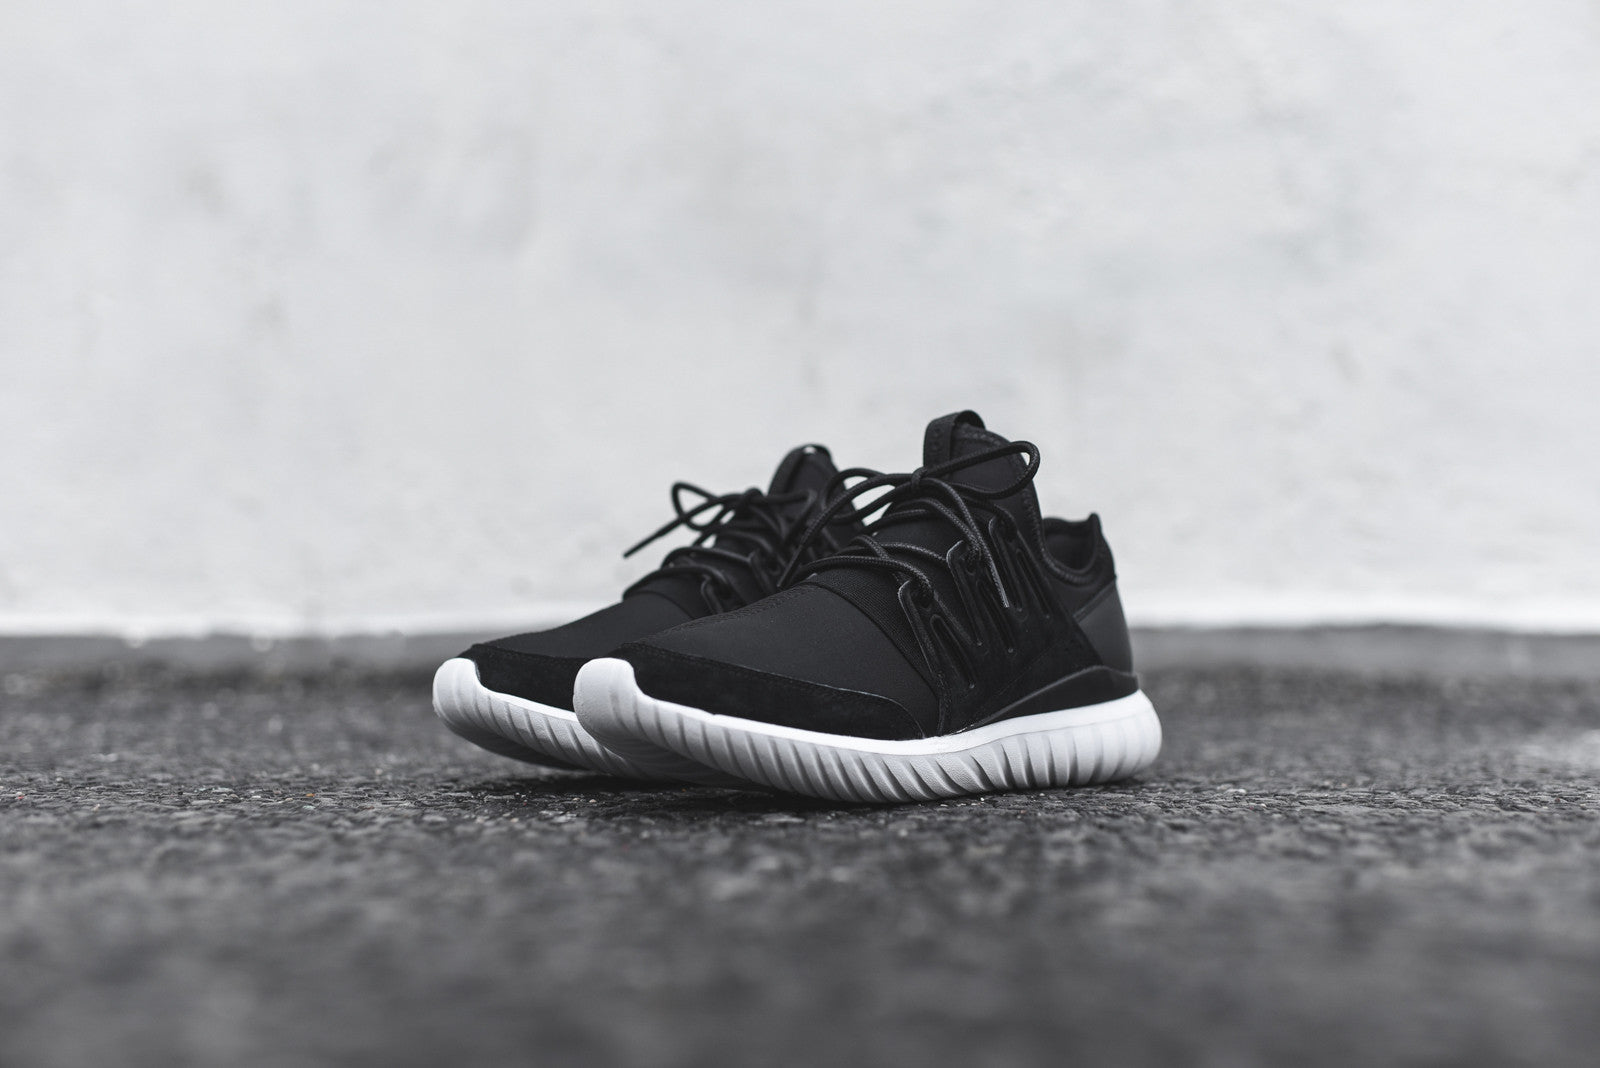 Adidas adidas Originals Tubular Runner Grey Trainers Asos